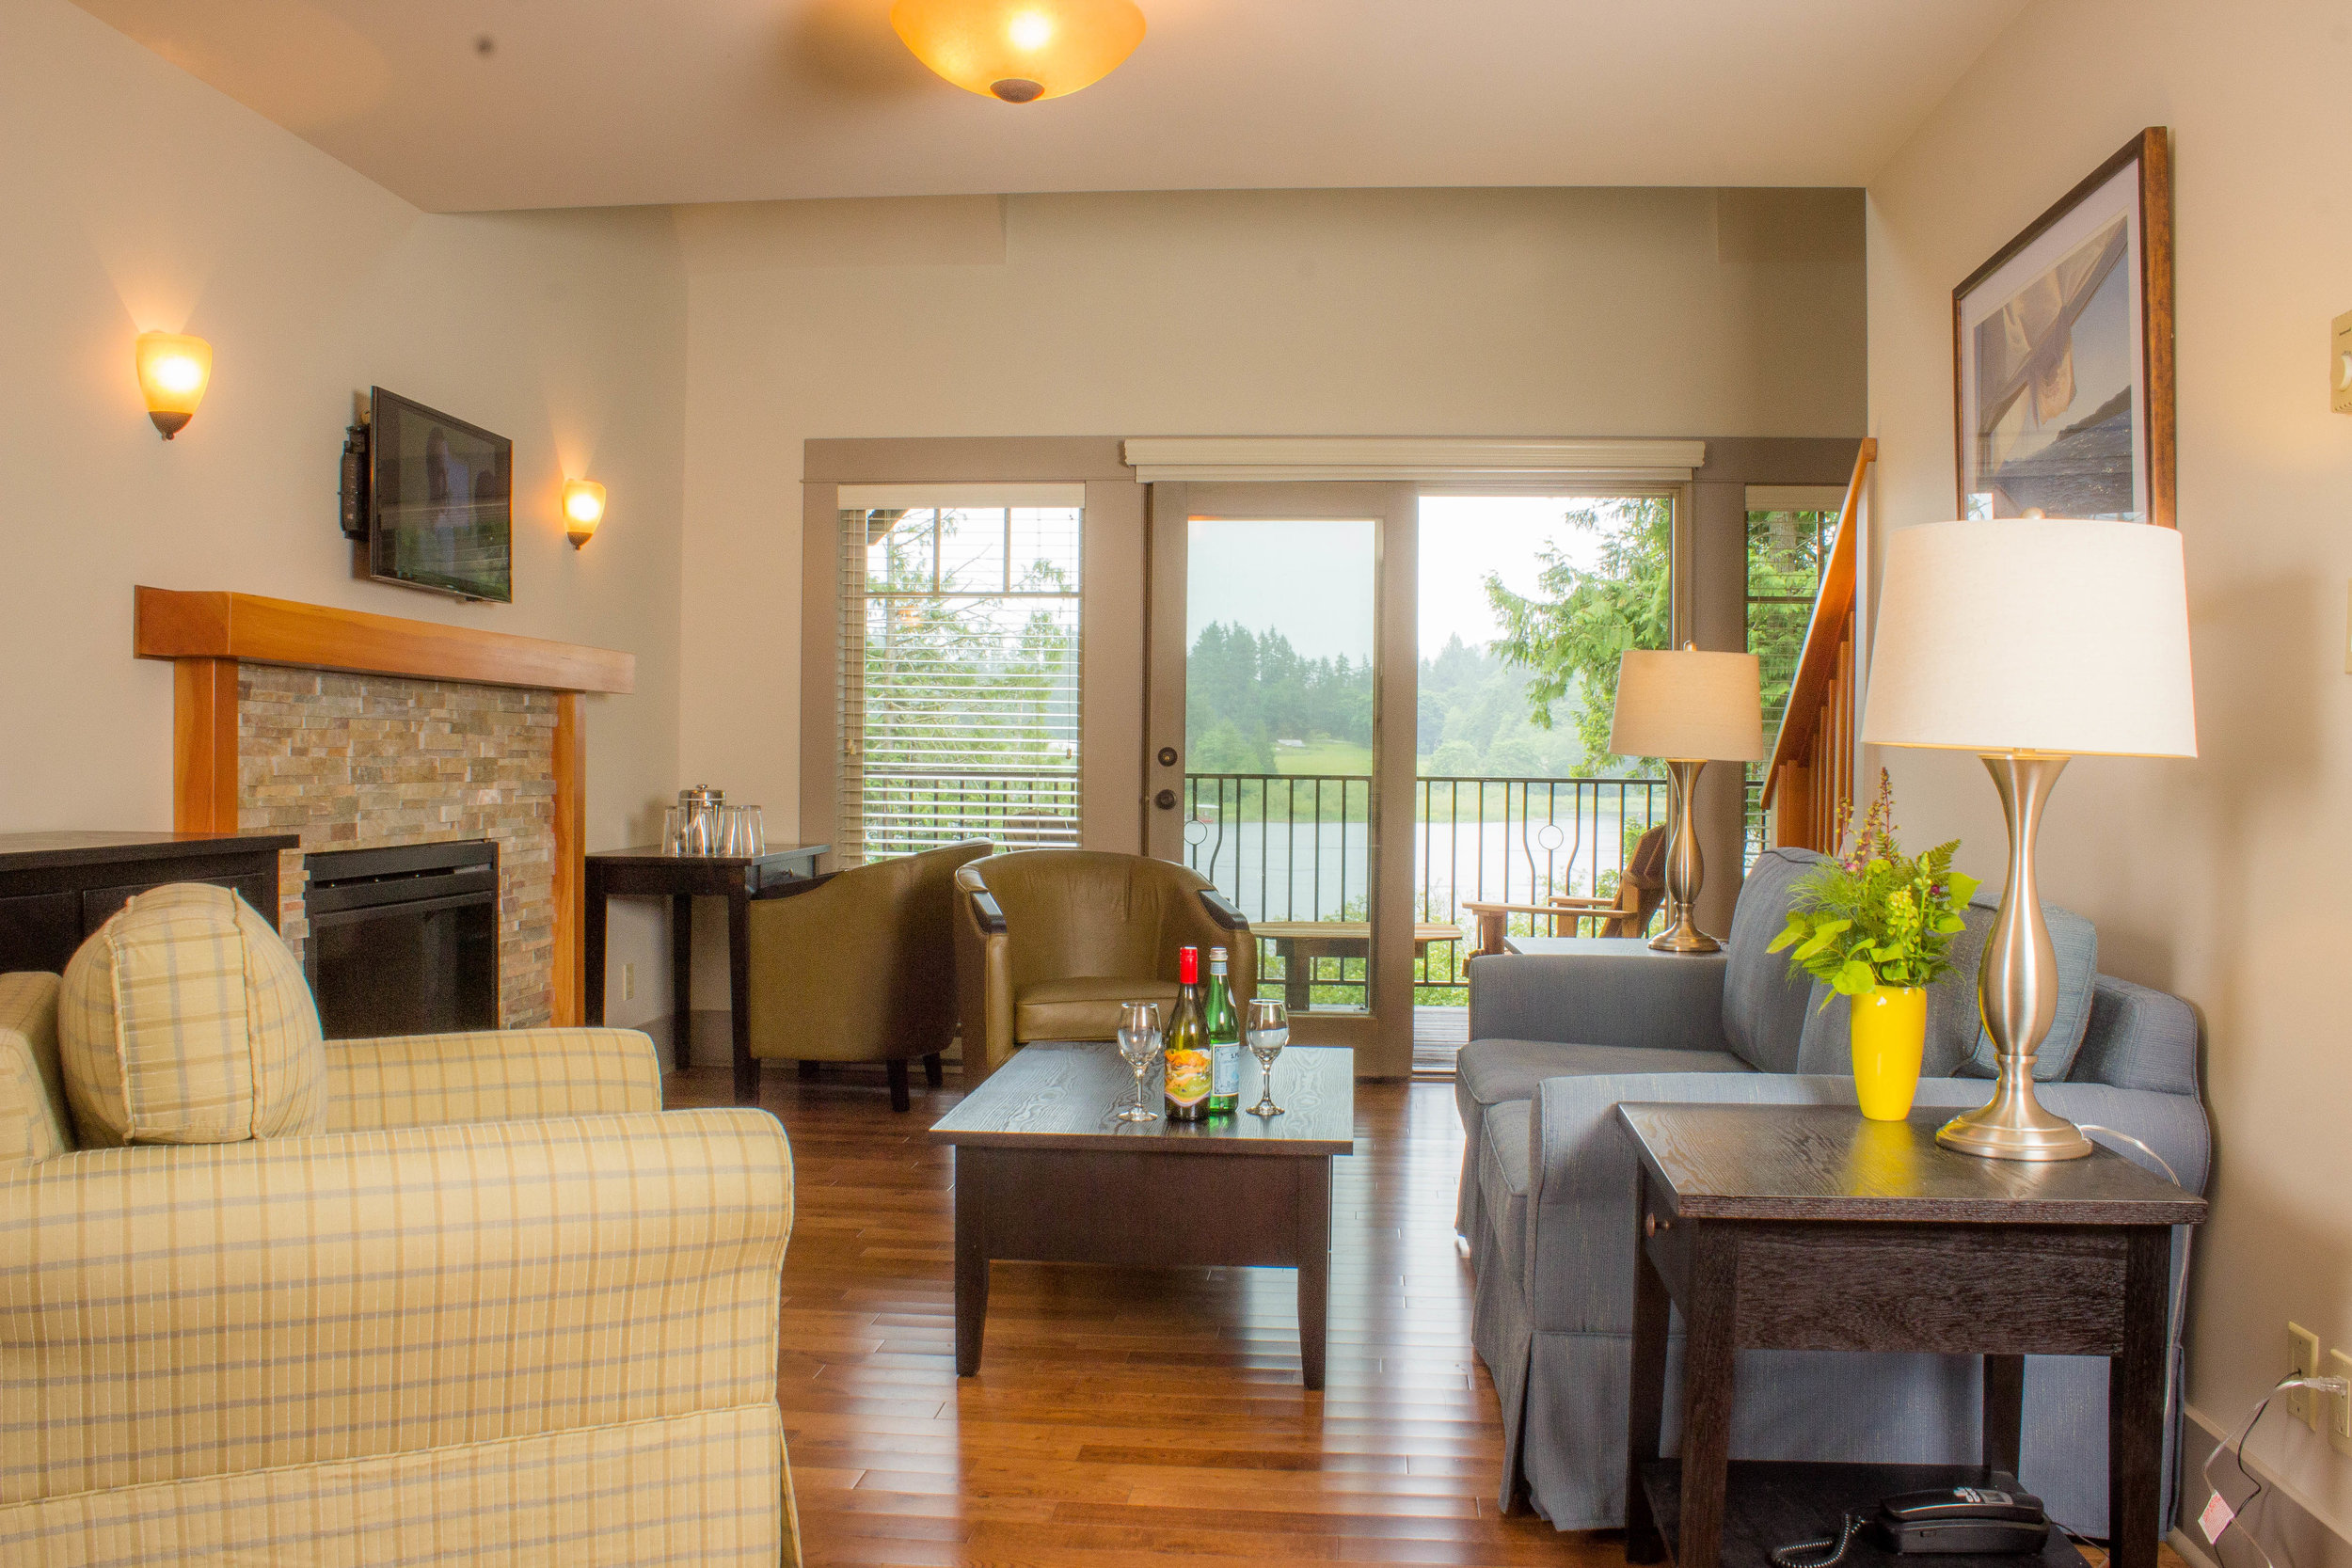 Cottages Features - Fully furnished and appointed interiors